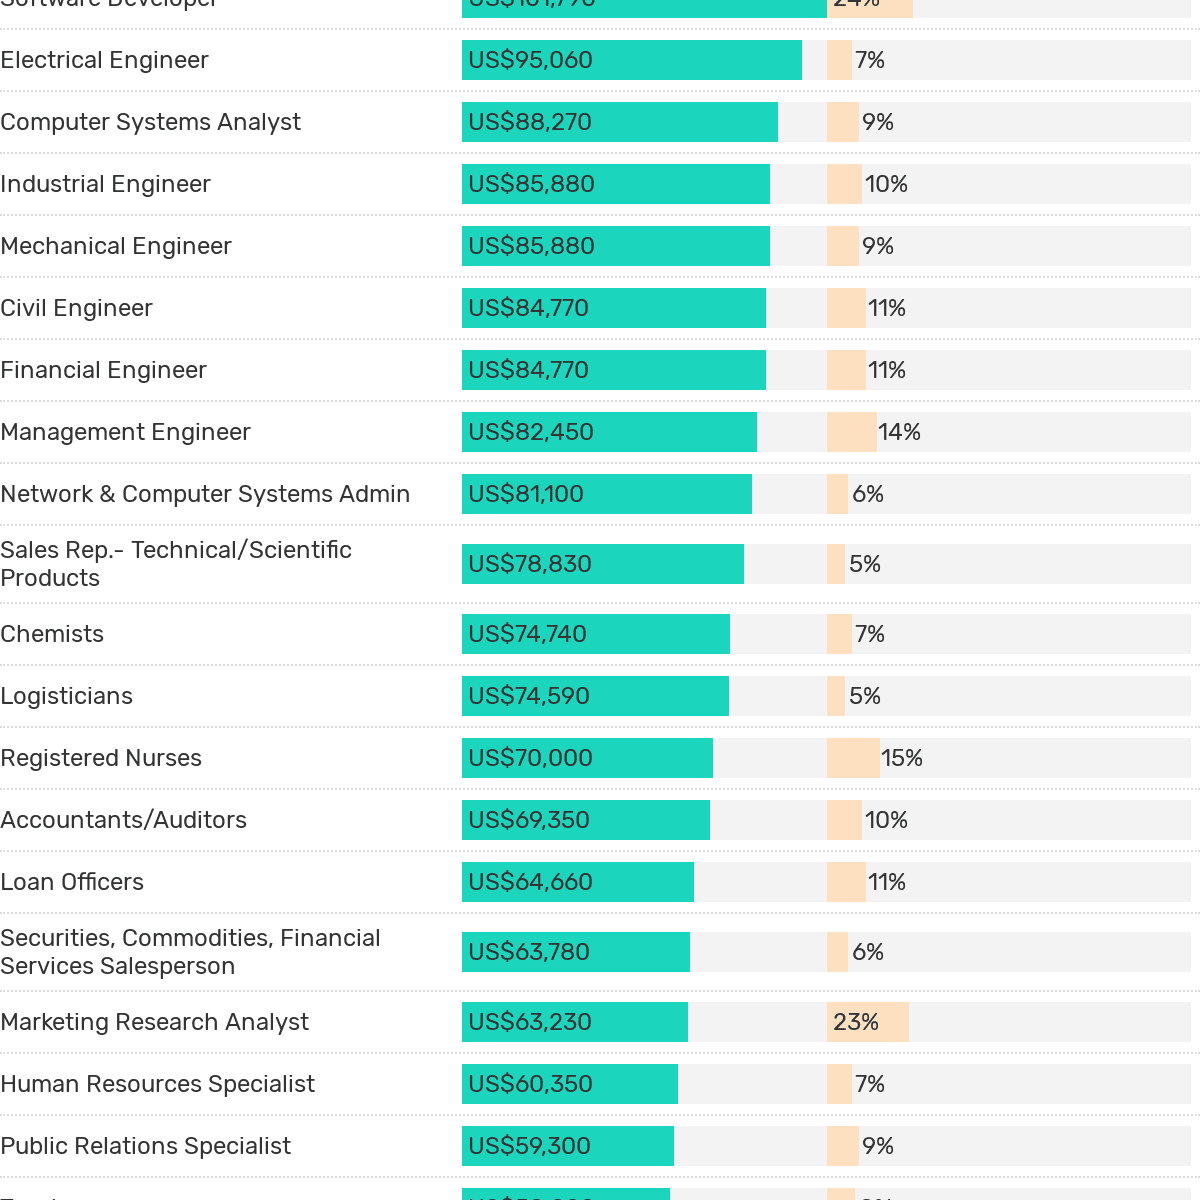 Highest Paying Jobs For Graduates Straight Out Of College